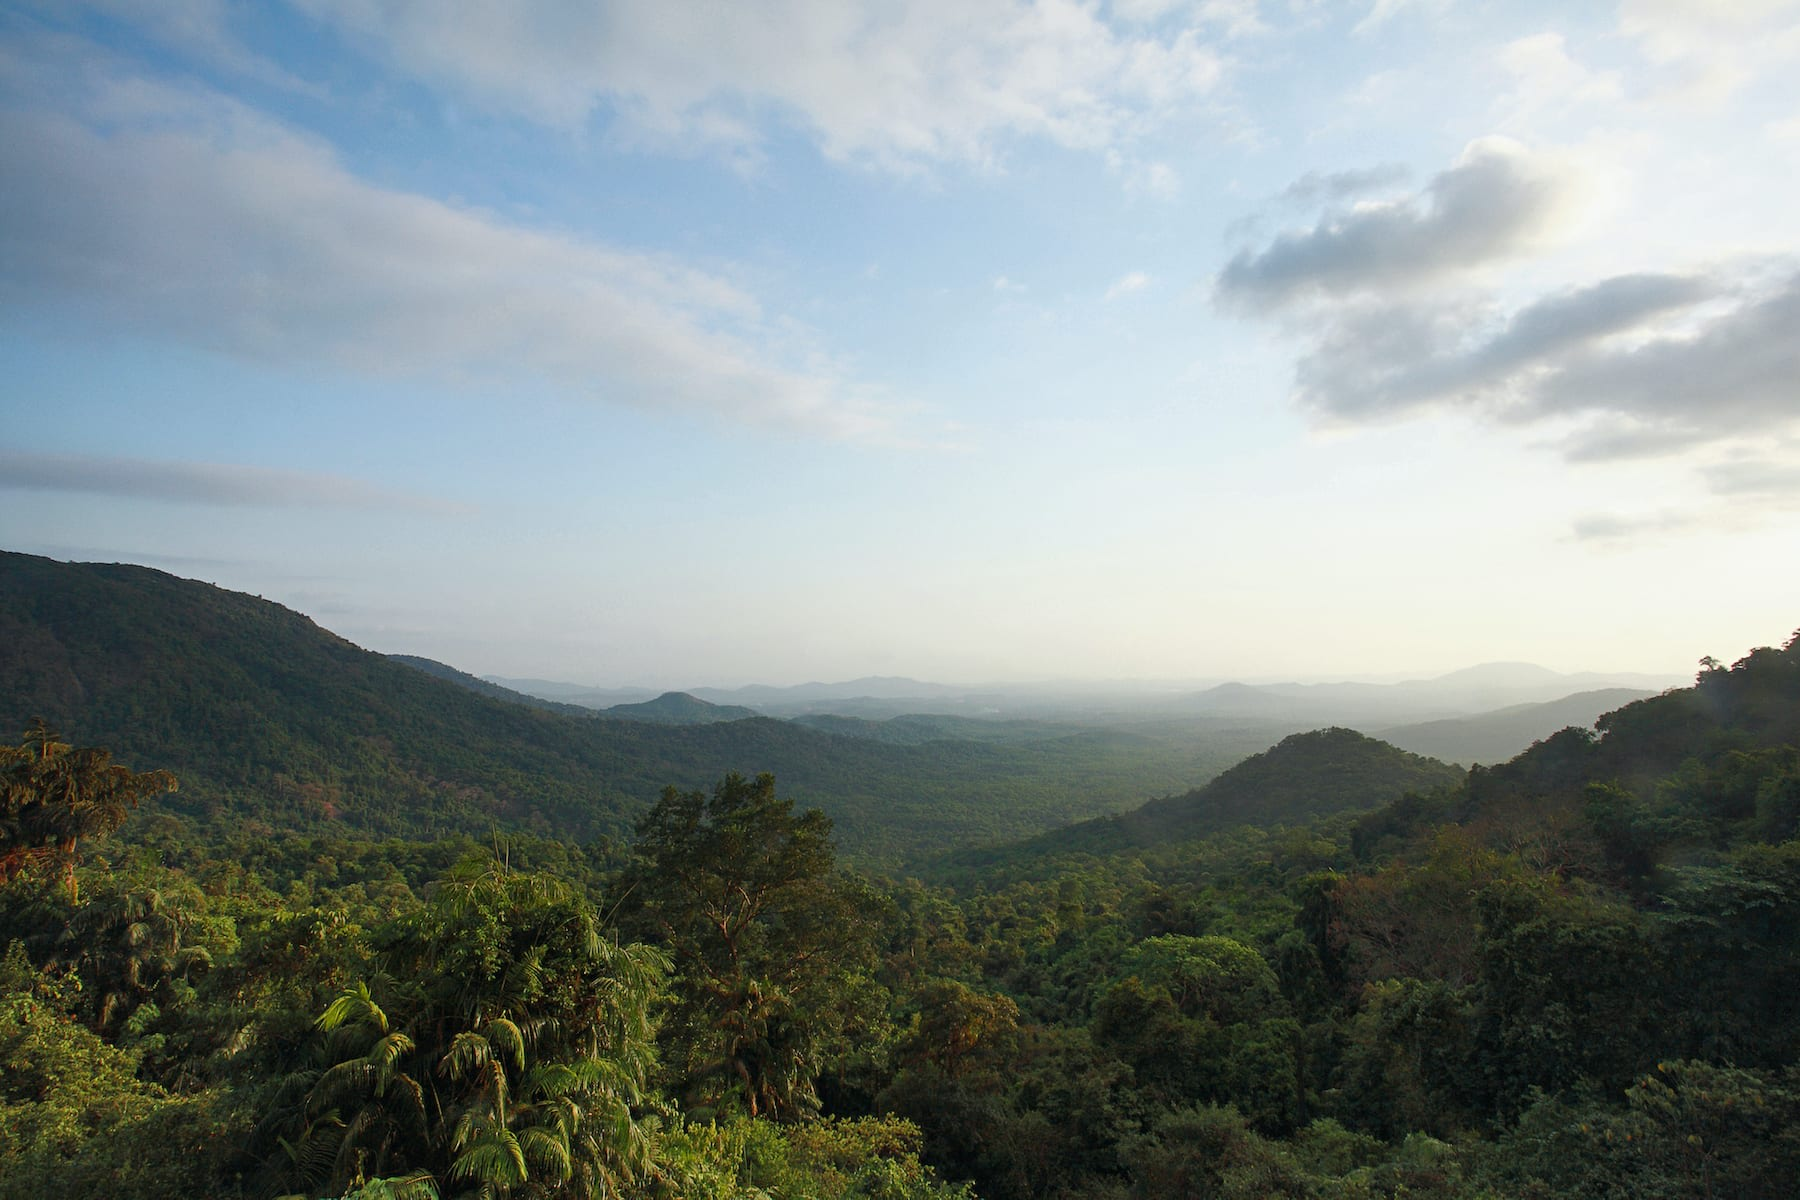 Mollem National Park is a part of the Western Ghats, one of the world's eight most significant biodiversity hotspots. The park's mountain ranges are older than the Himalayas. Photo: RealityImages/Shutterstock  Cover: Dudhsagar, literally meaning a sea of milk, is one of the tallest waterfalls in India. The river Mandovi, one of Goa's main rivers, plummets over peaks of the Western Ghats to form these gushing tiered falls. Cover photo: Nirmal Kulkarni